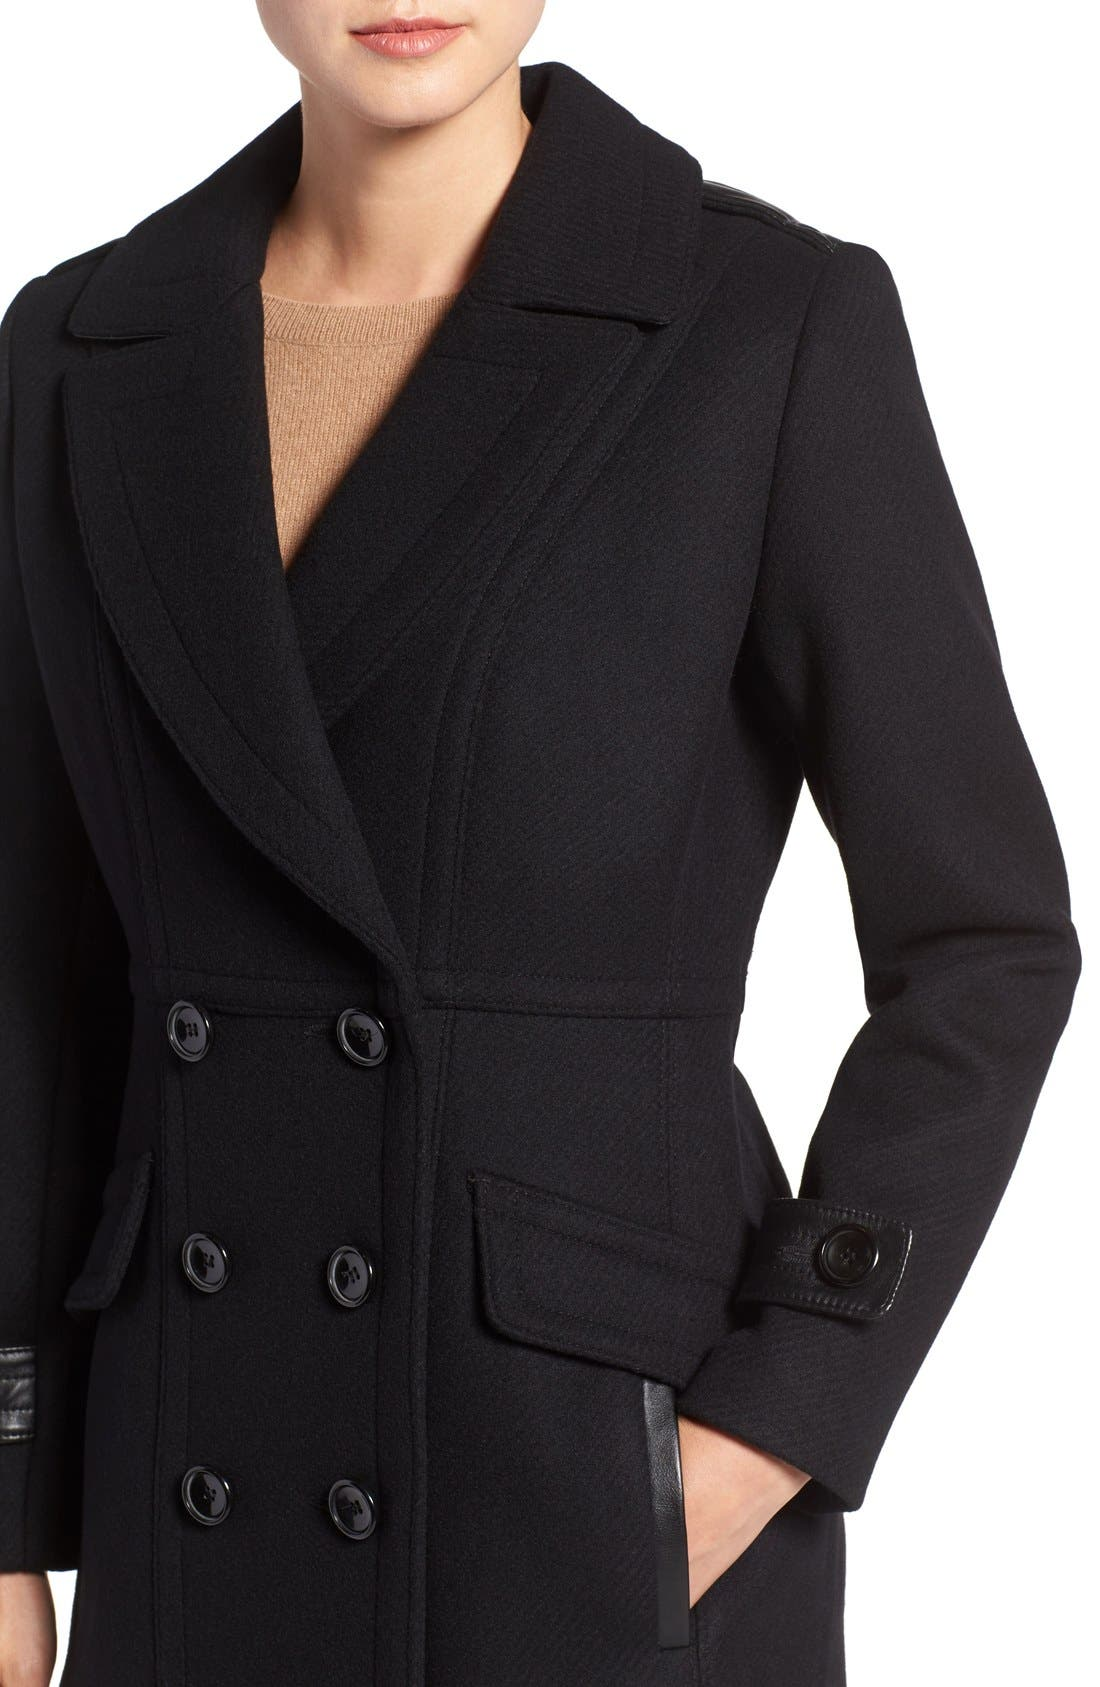 'Chloe' Wool Blend Peacoat,                             Alternate thumbnail 4, color,                             001